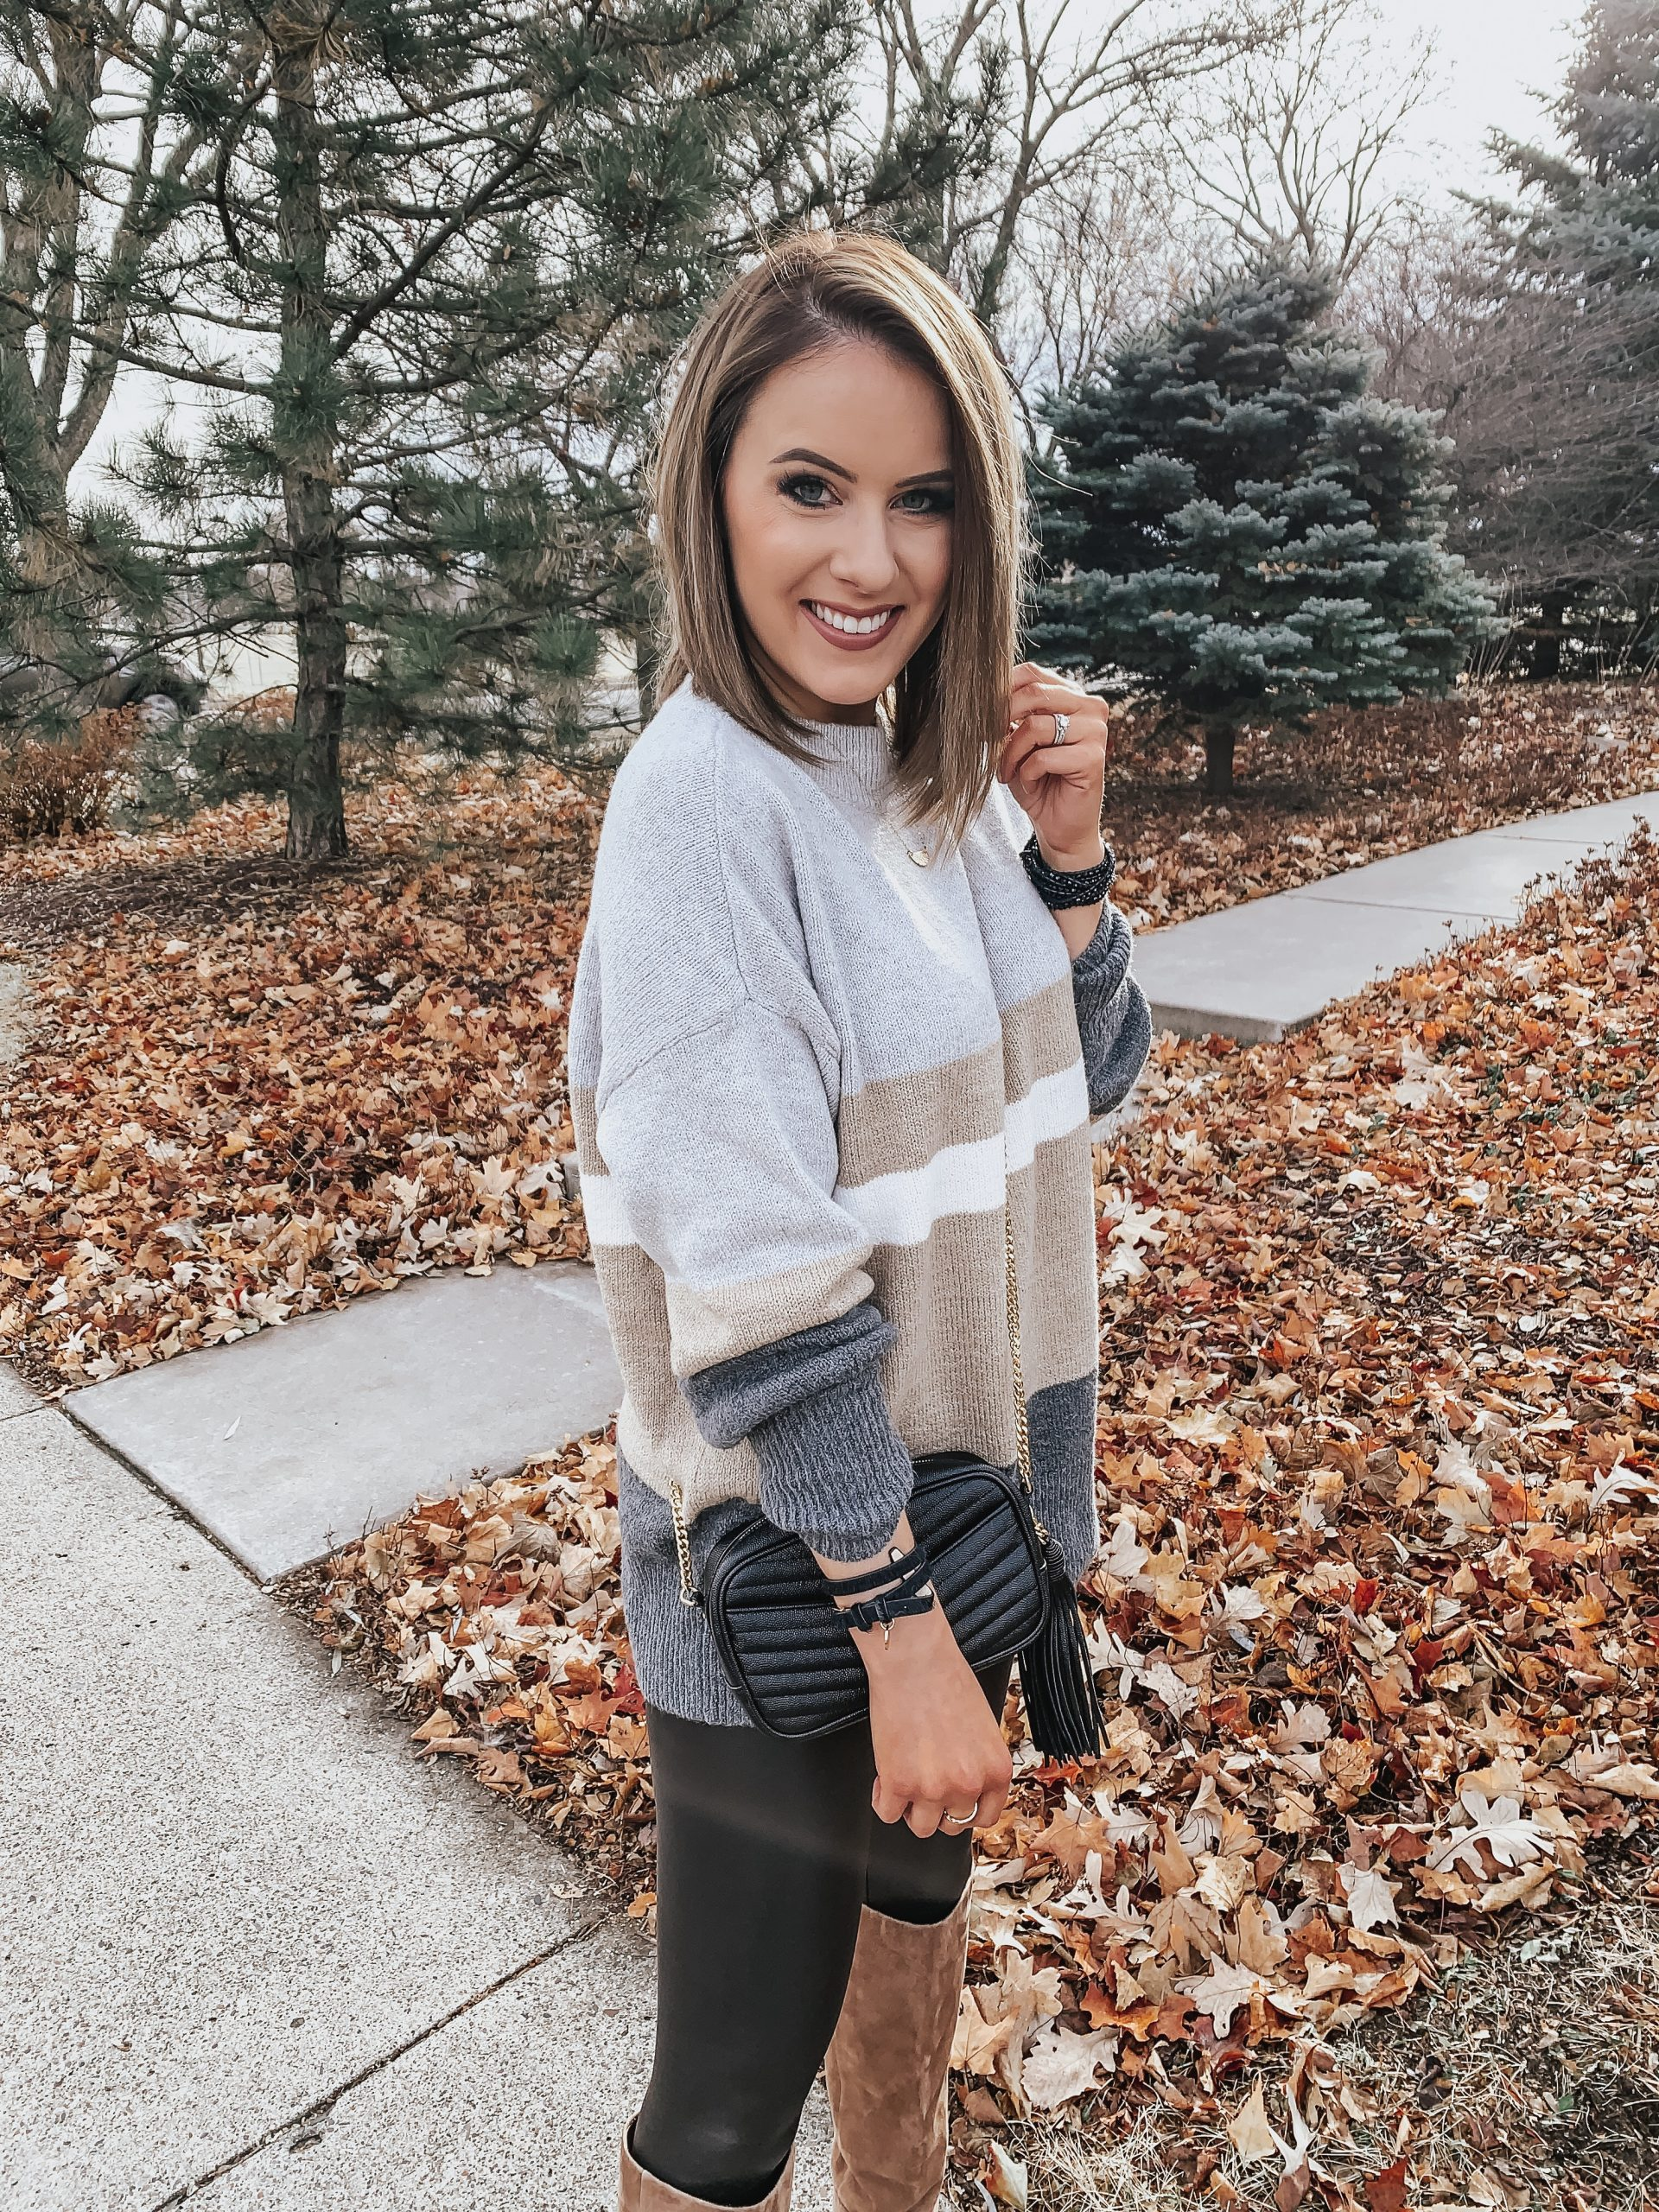 Last Minute Thanksgiving Outfit   Style Blogger Lauren Meyer shares a Last Minute Thanksgiving Outfit